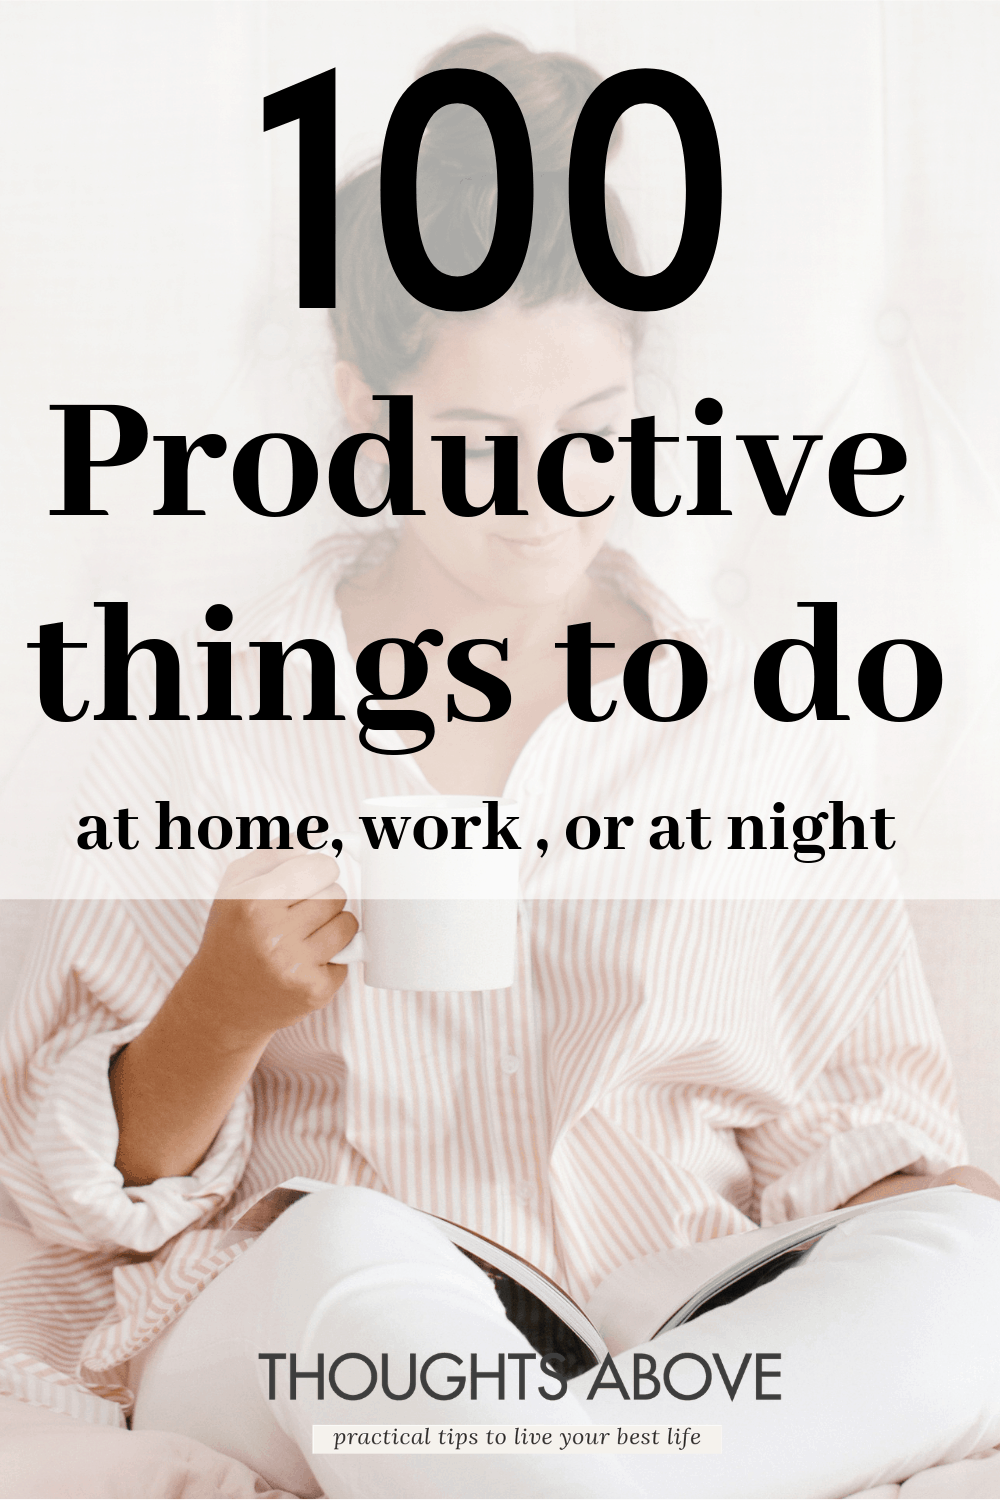 Wondering what to do on your day off or simply Looking for some inspiration of productive things to do either When bored In summer or even at home? This article has the best list most even successful people use every day. things to do when bored for adults #productive #productivity #goals #summer #girlboss #habits #bosslady